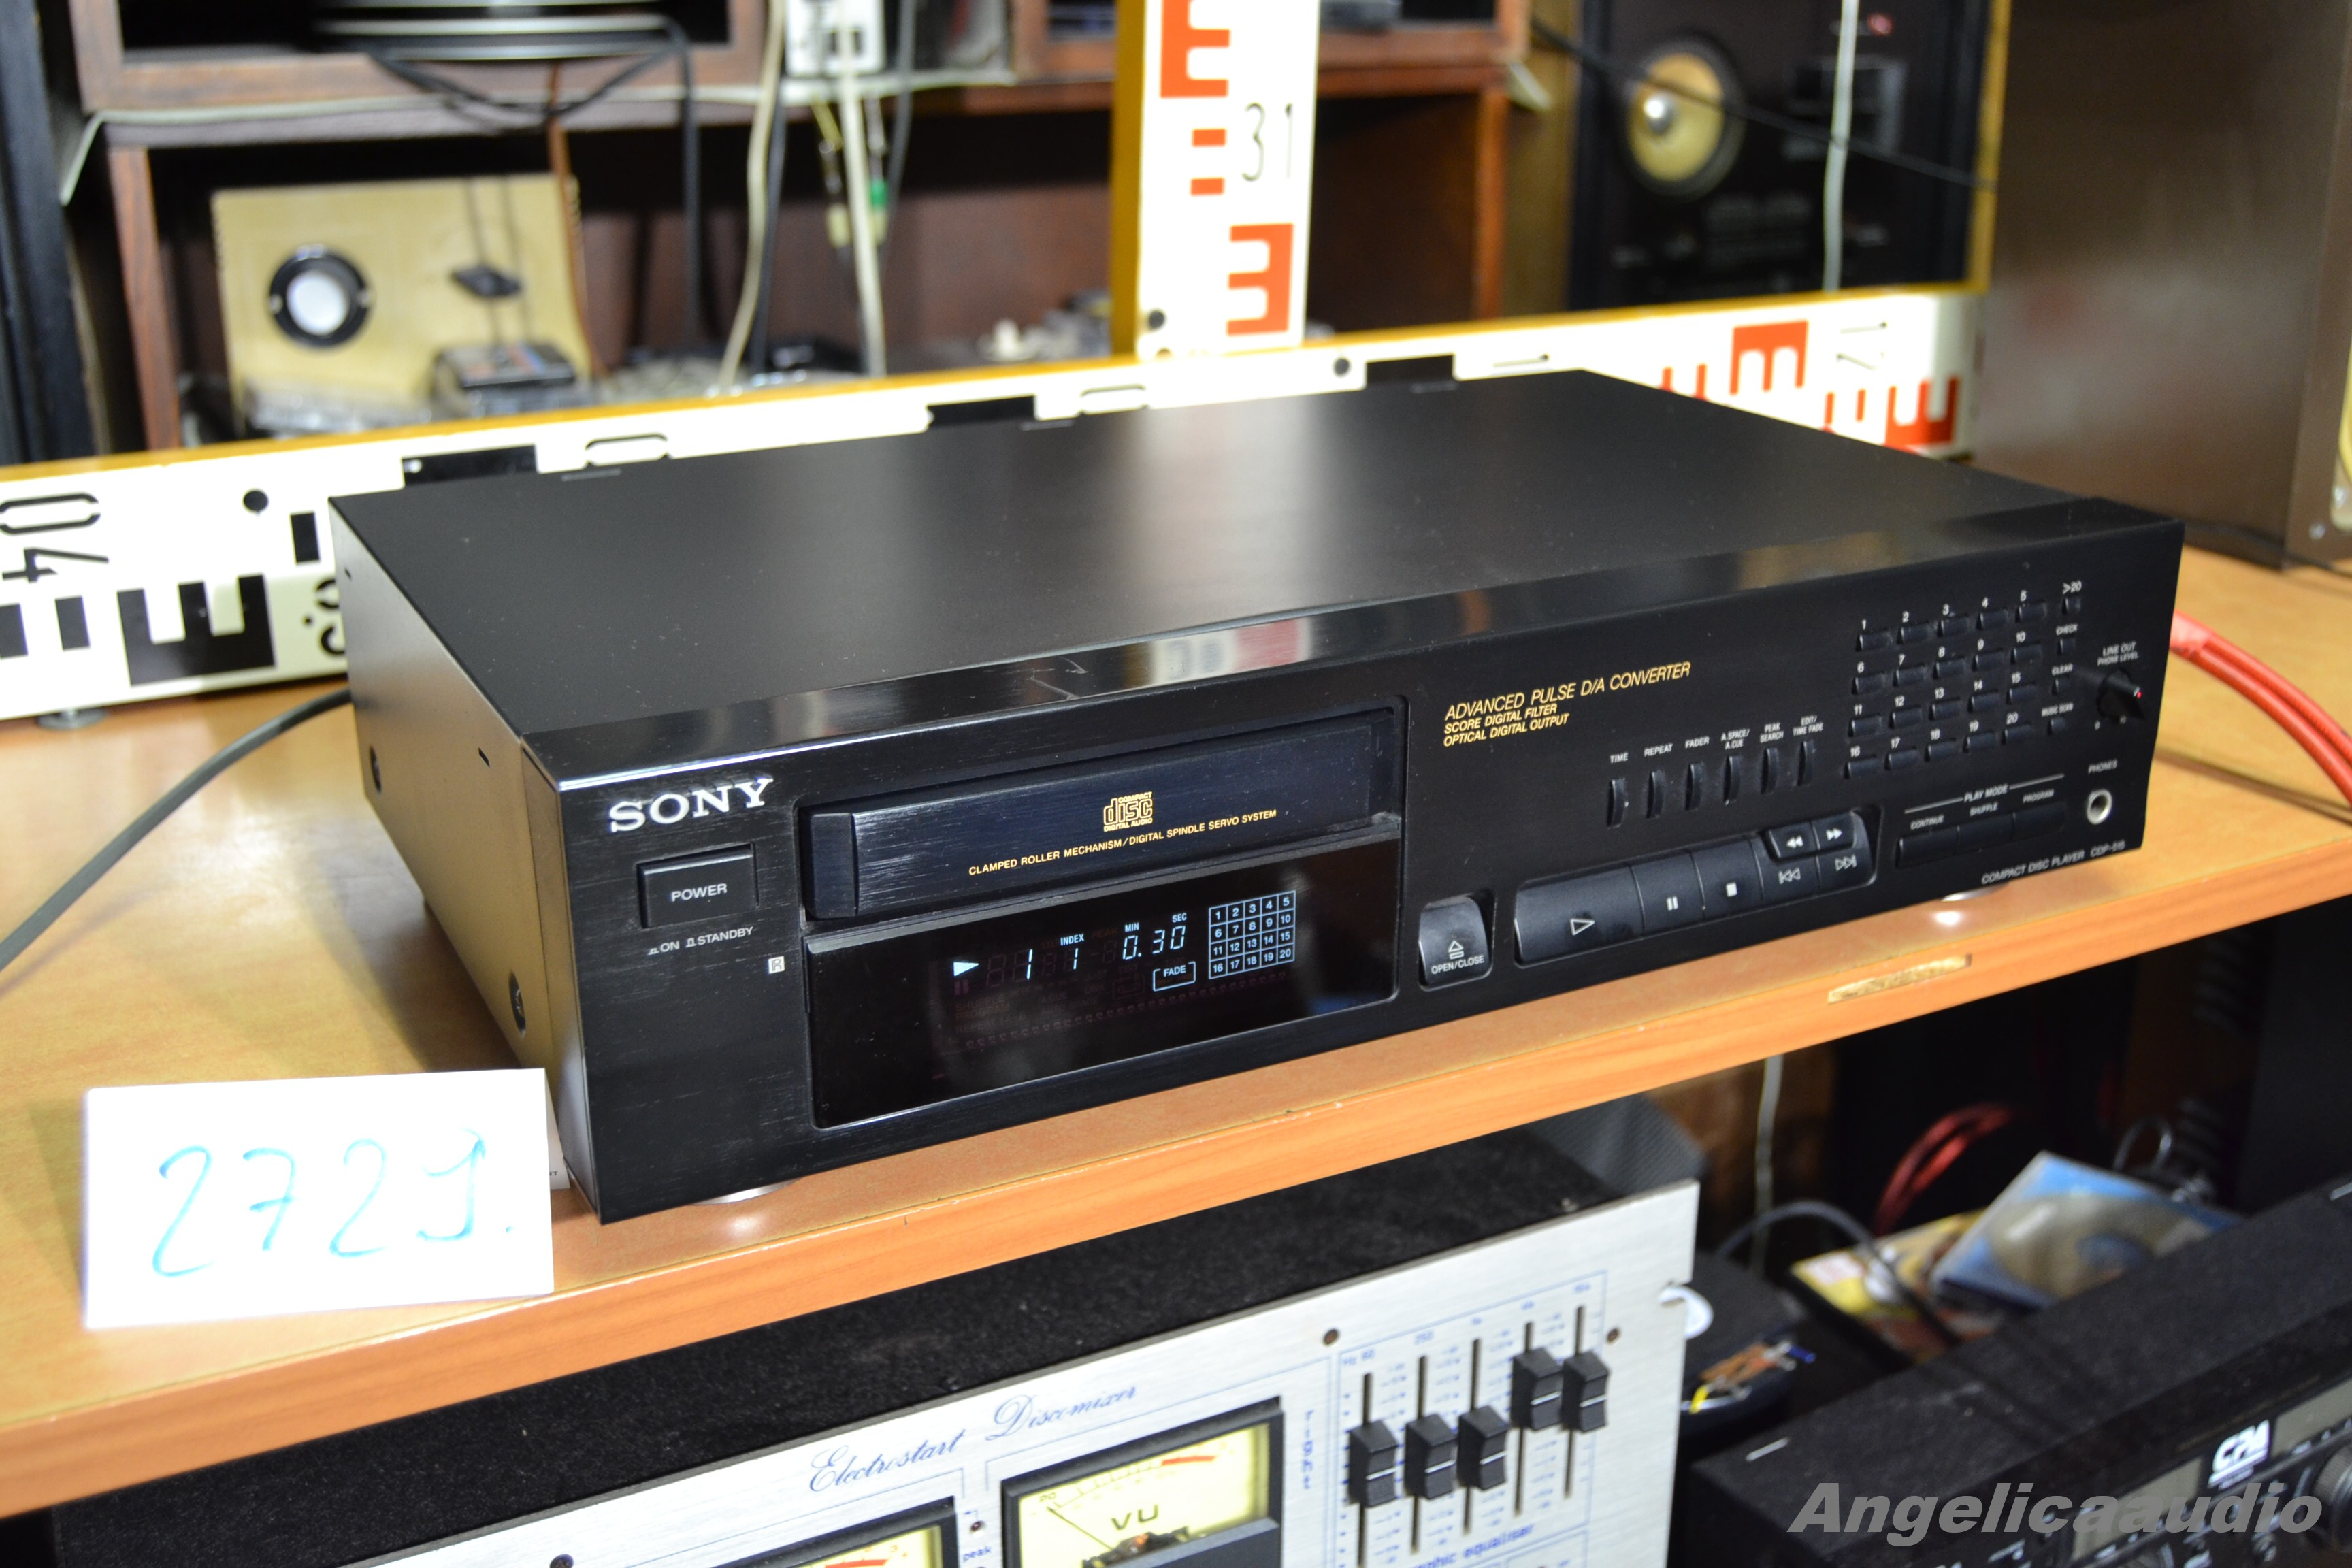 Sony Cdp 515 Made In France No 2729 Angelicaaudio 1990